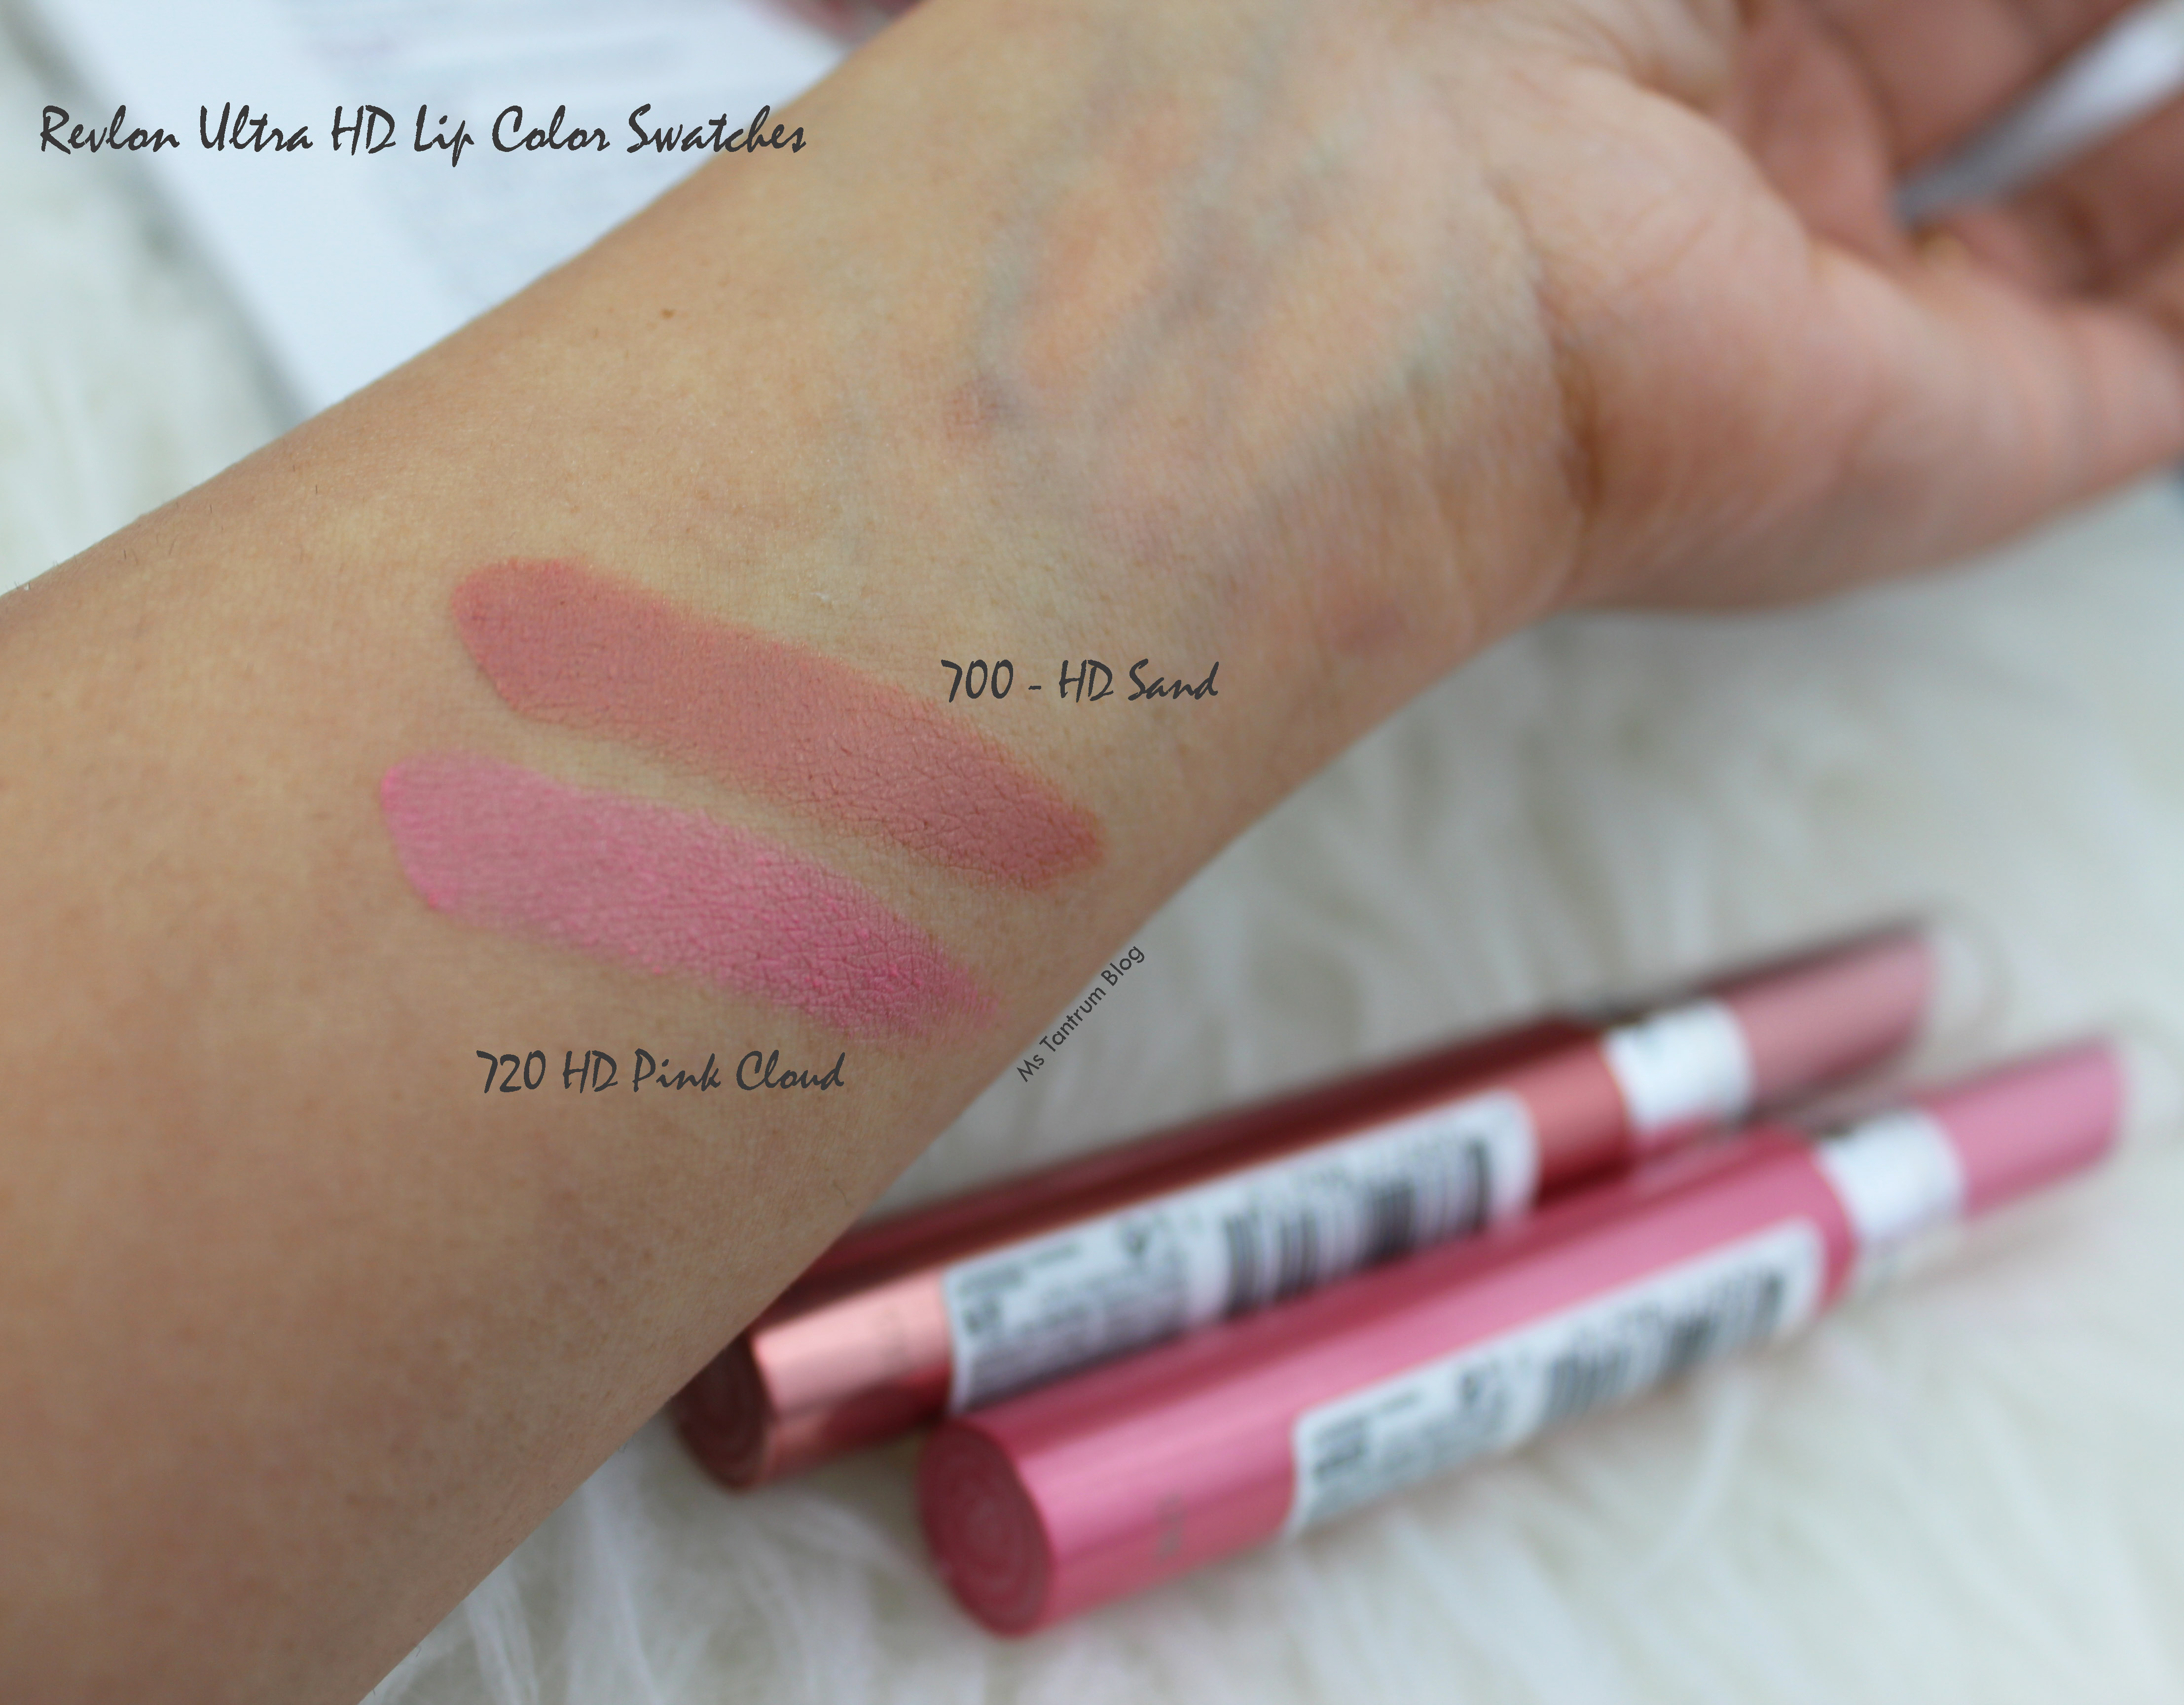 Revlon Ultra HD lip color swatches